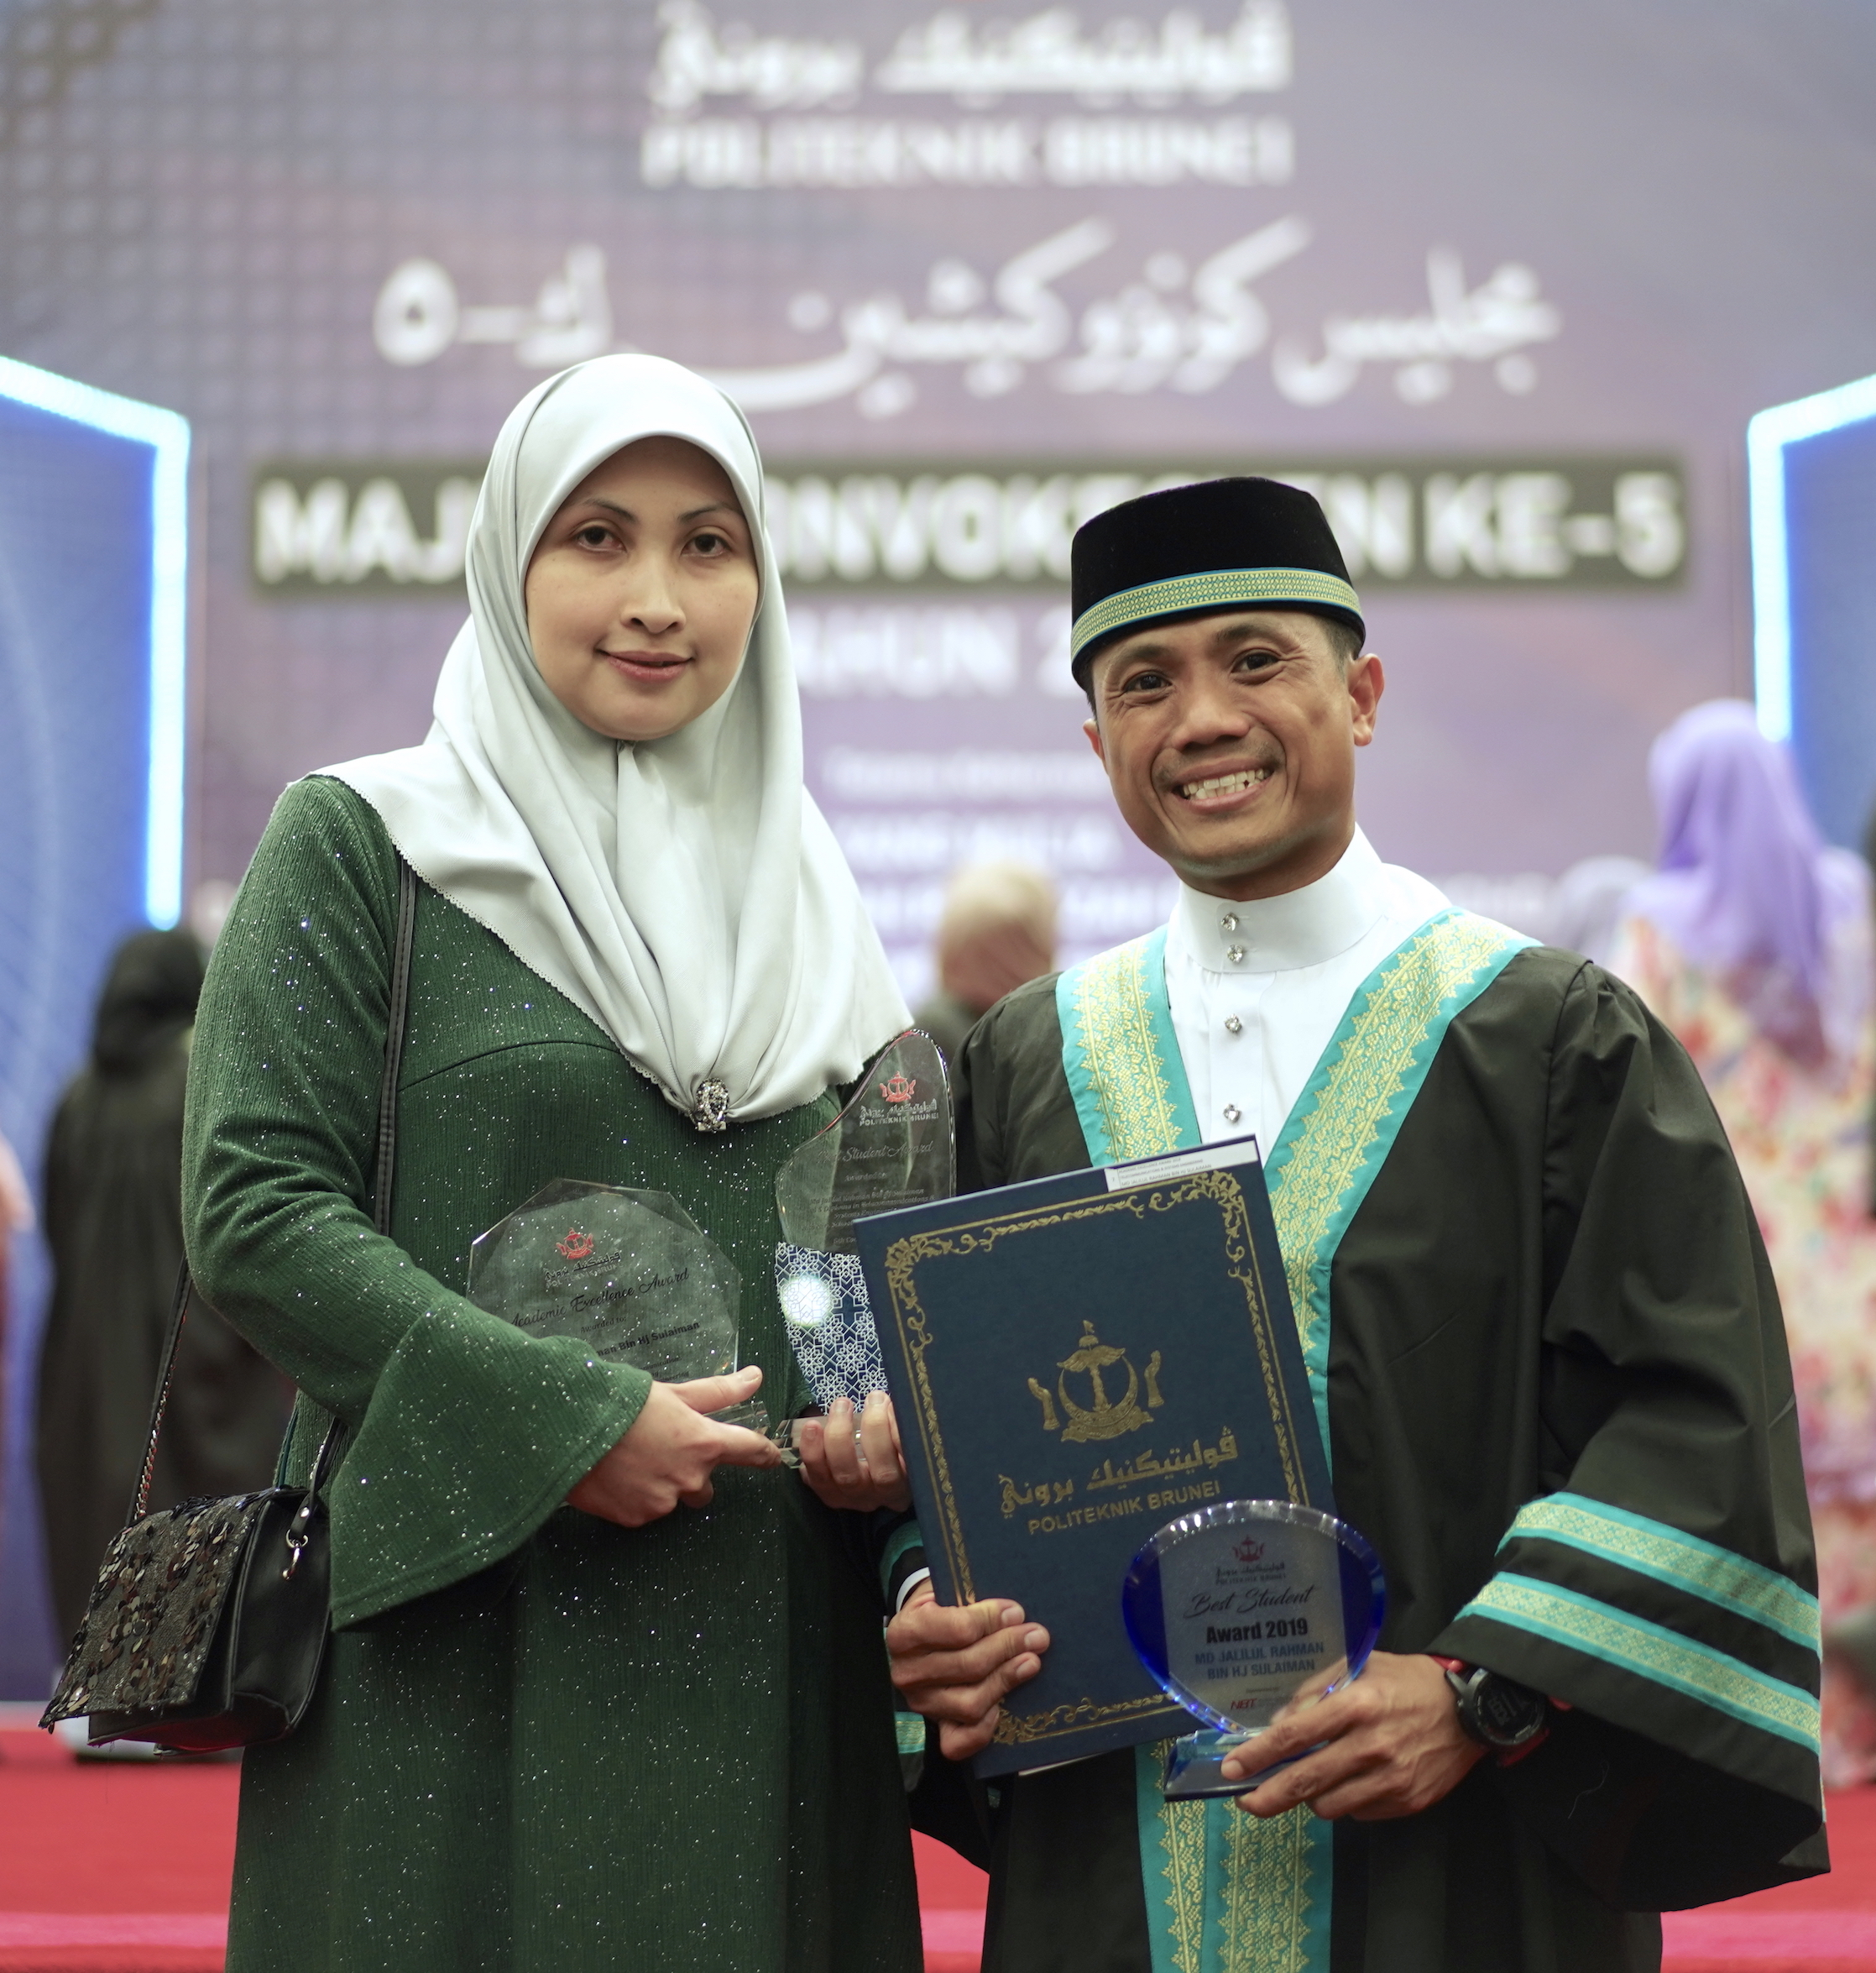 (BEST STUDENT AWARD) MD JALILUL RAHMAN BIN HJ SULAIMAN - LEVEL 5 DIPLOMA IN TELECOMMUNICATIONS & SYSTEMS ENGINEERING